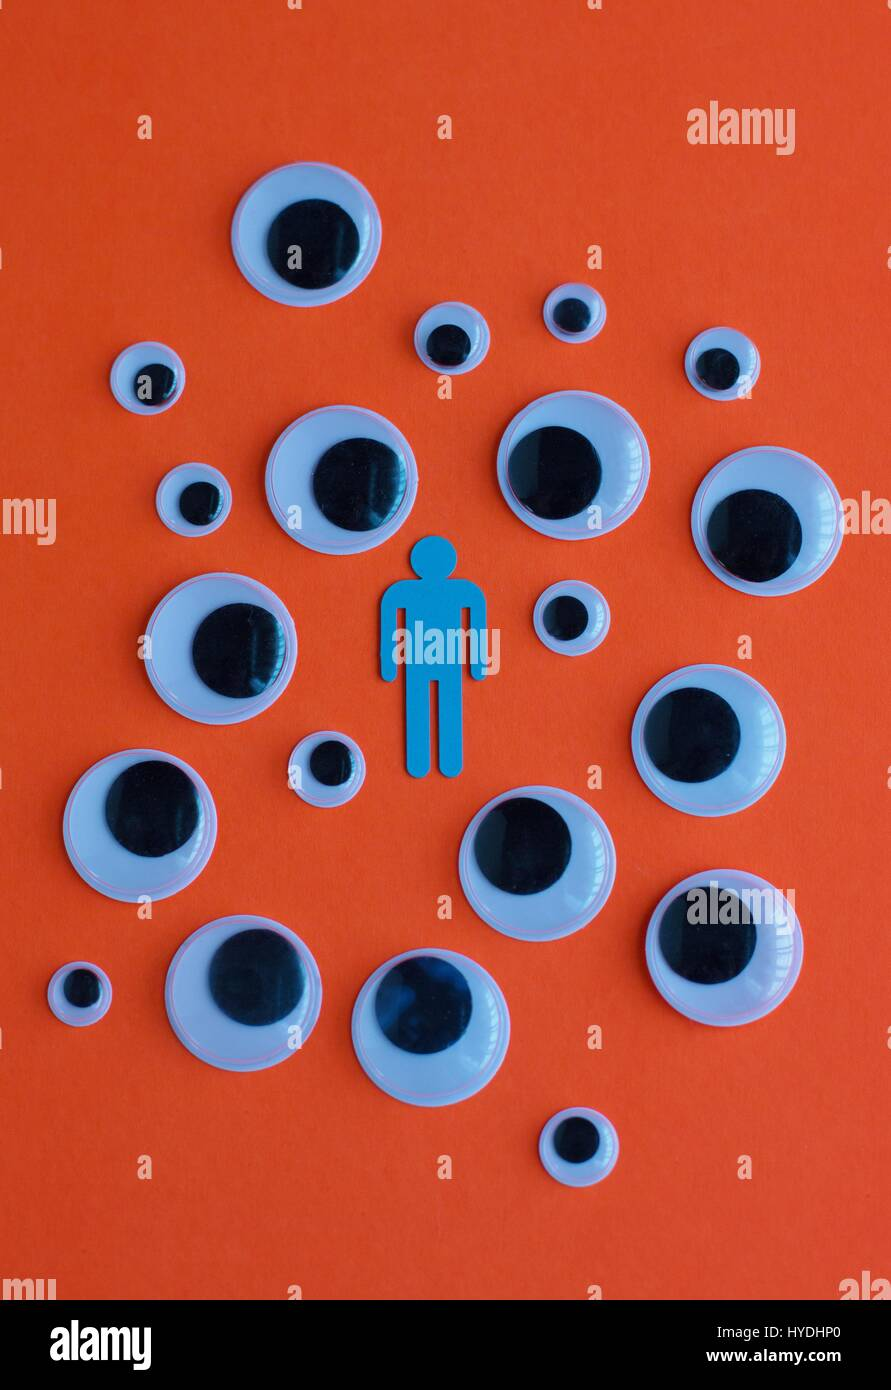 The figure of a man surrounded by eyeballs looking at him. - Stock Image